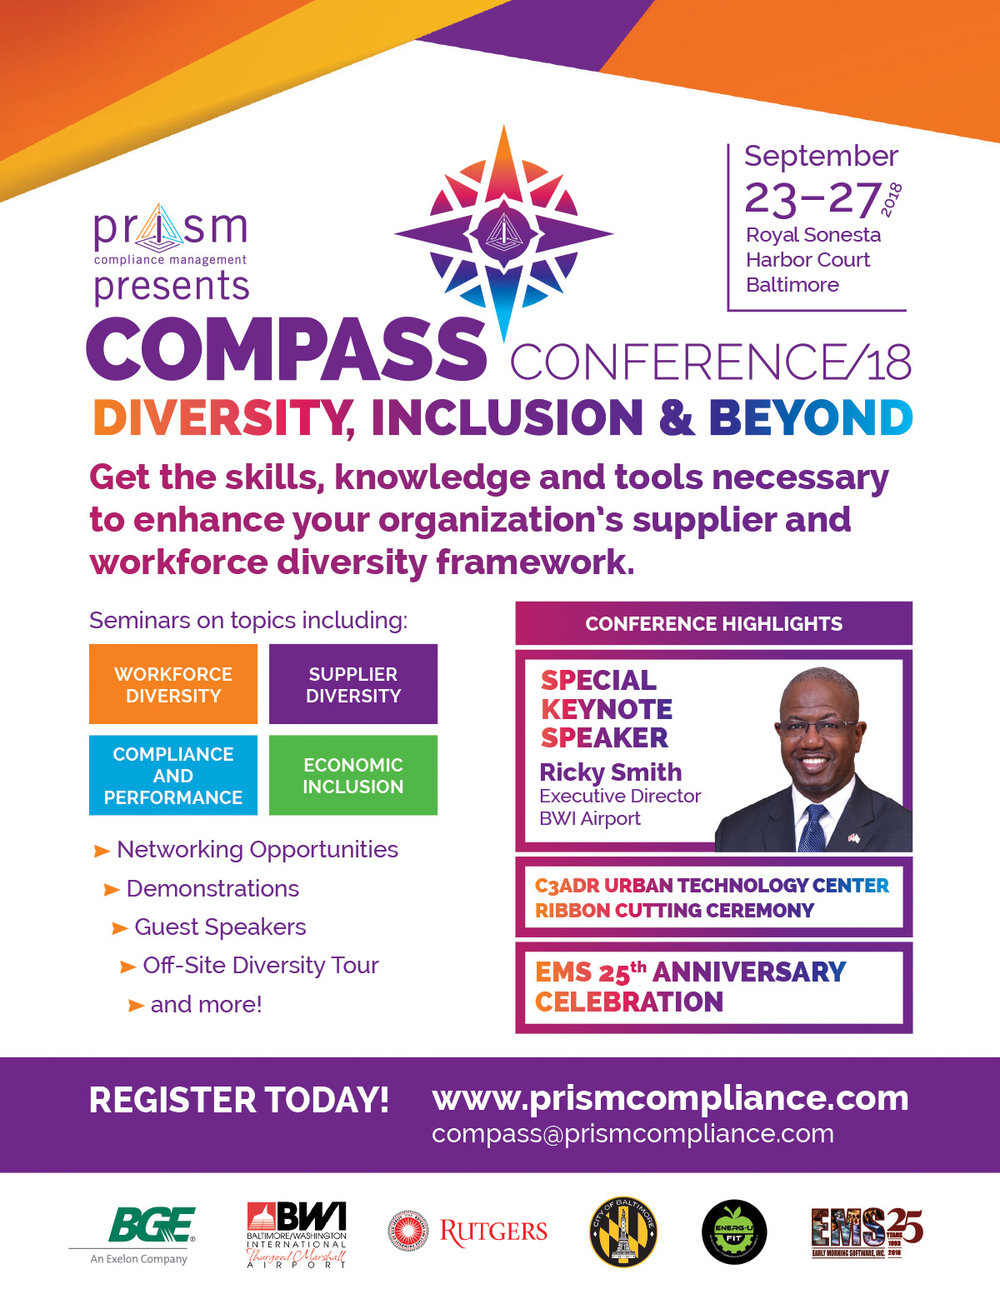 COMPASS+Diversity+Conference+Flier+2018.jpg